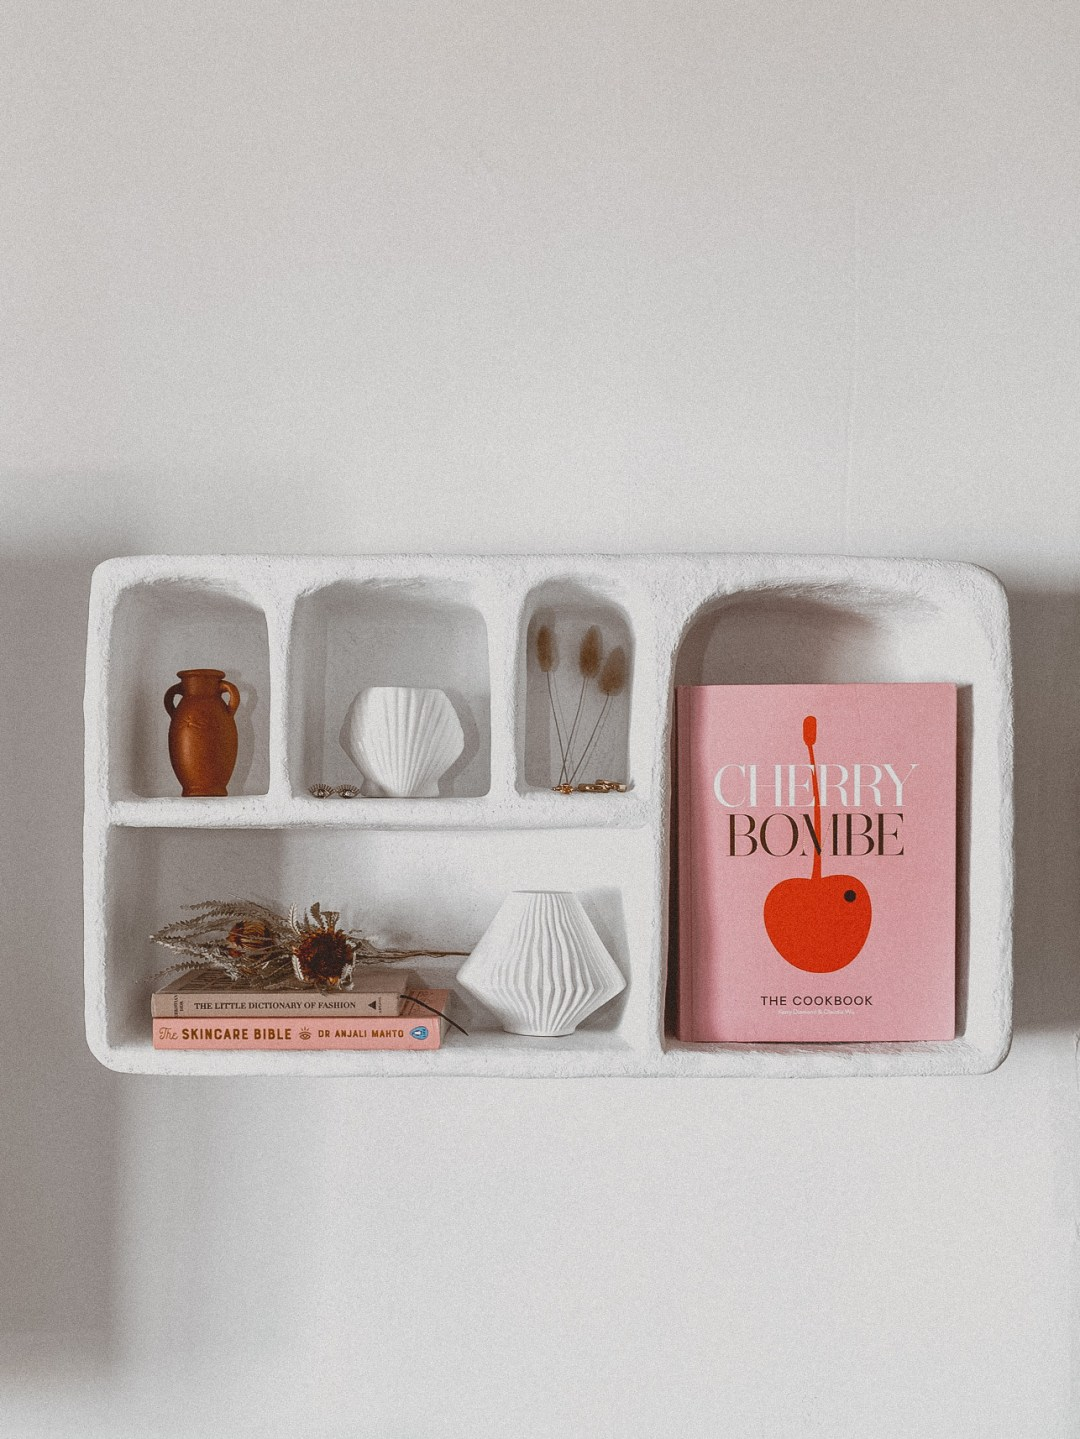 snack-bar-decor-idea-allaboutgoodvibes.com-Mollie-Larsen-@curatedbymollie